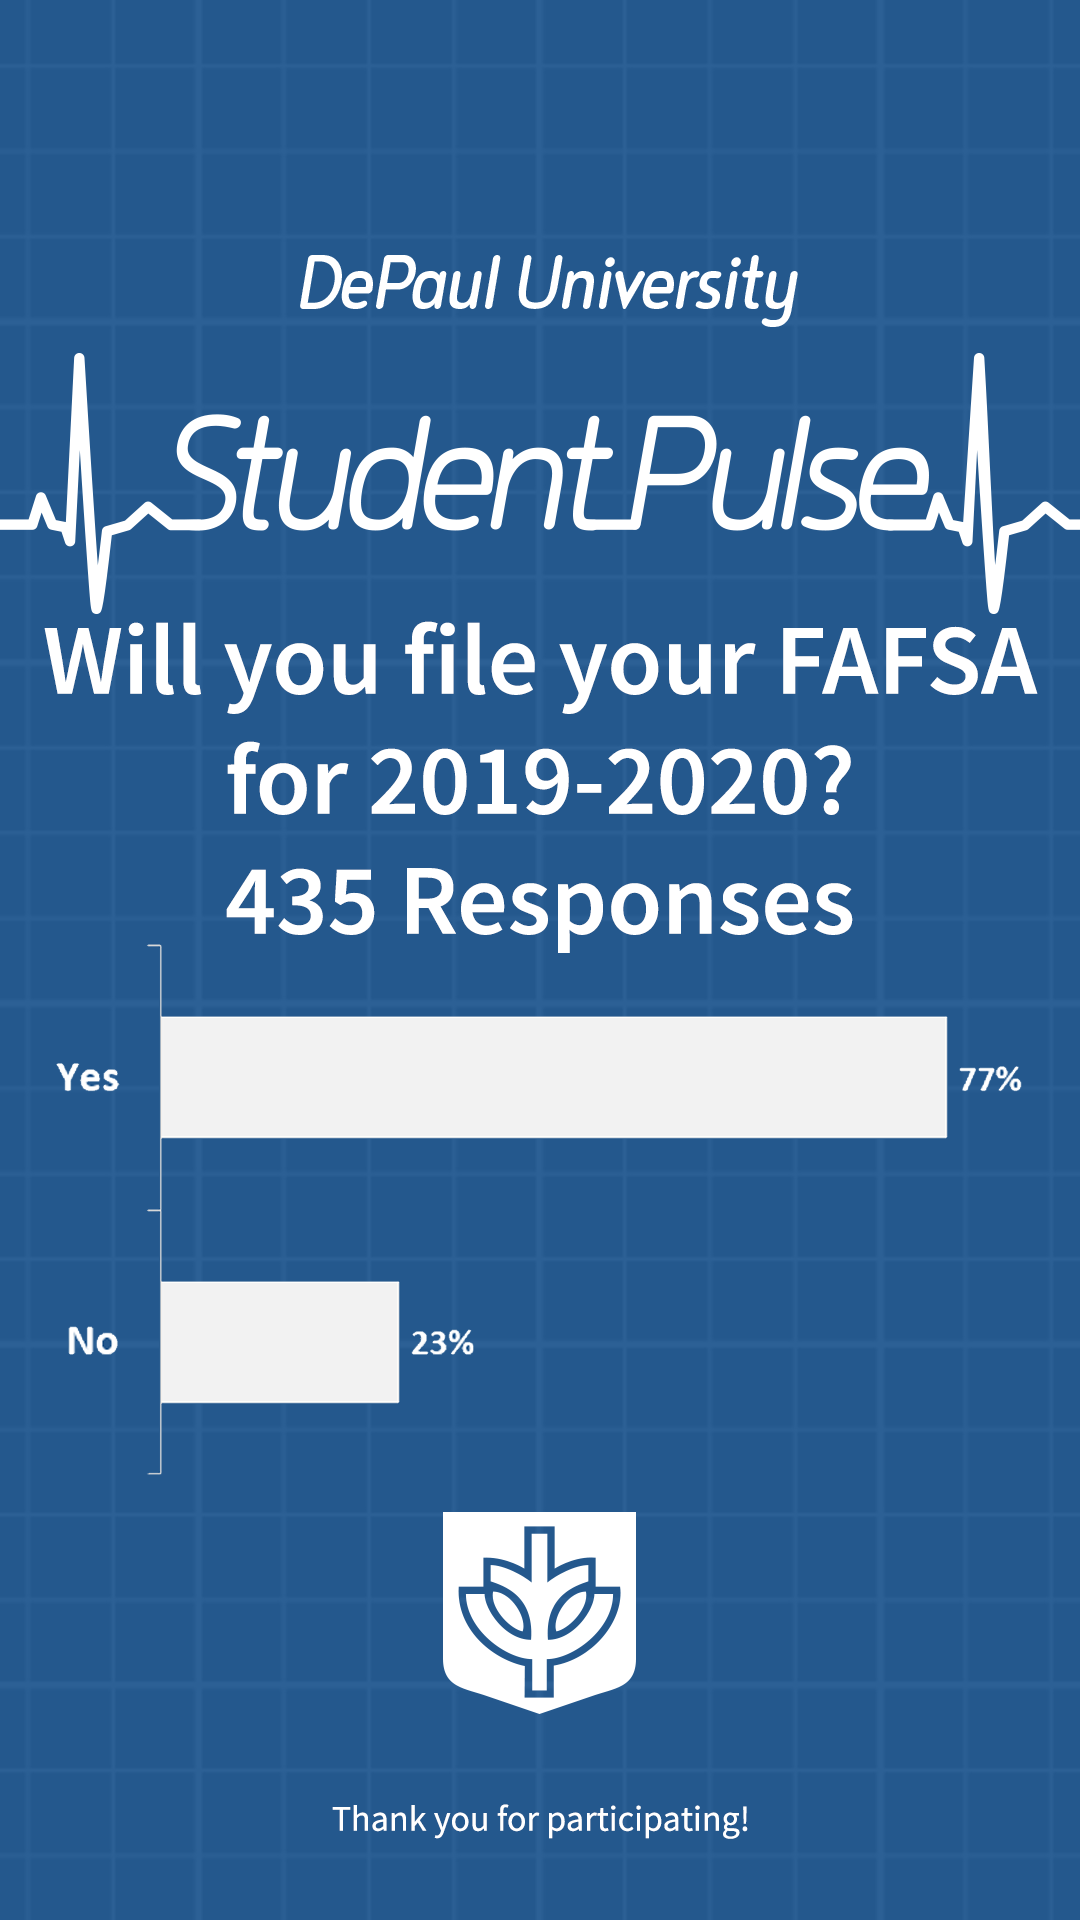 Will you file your FAFSA for 2019-2020?